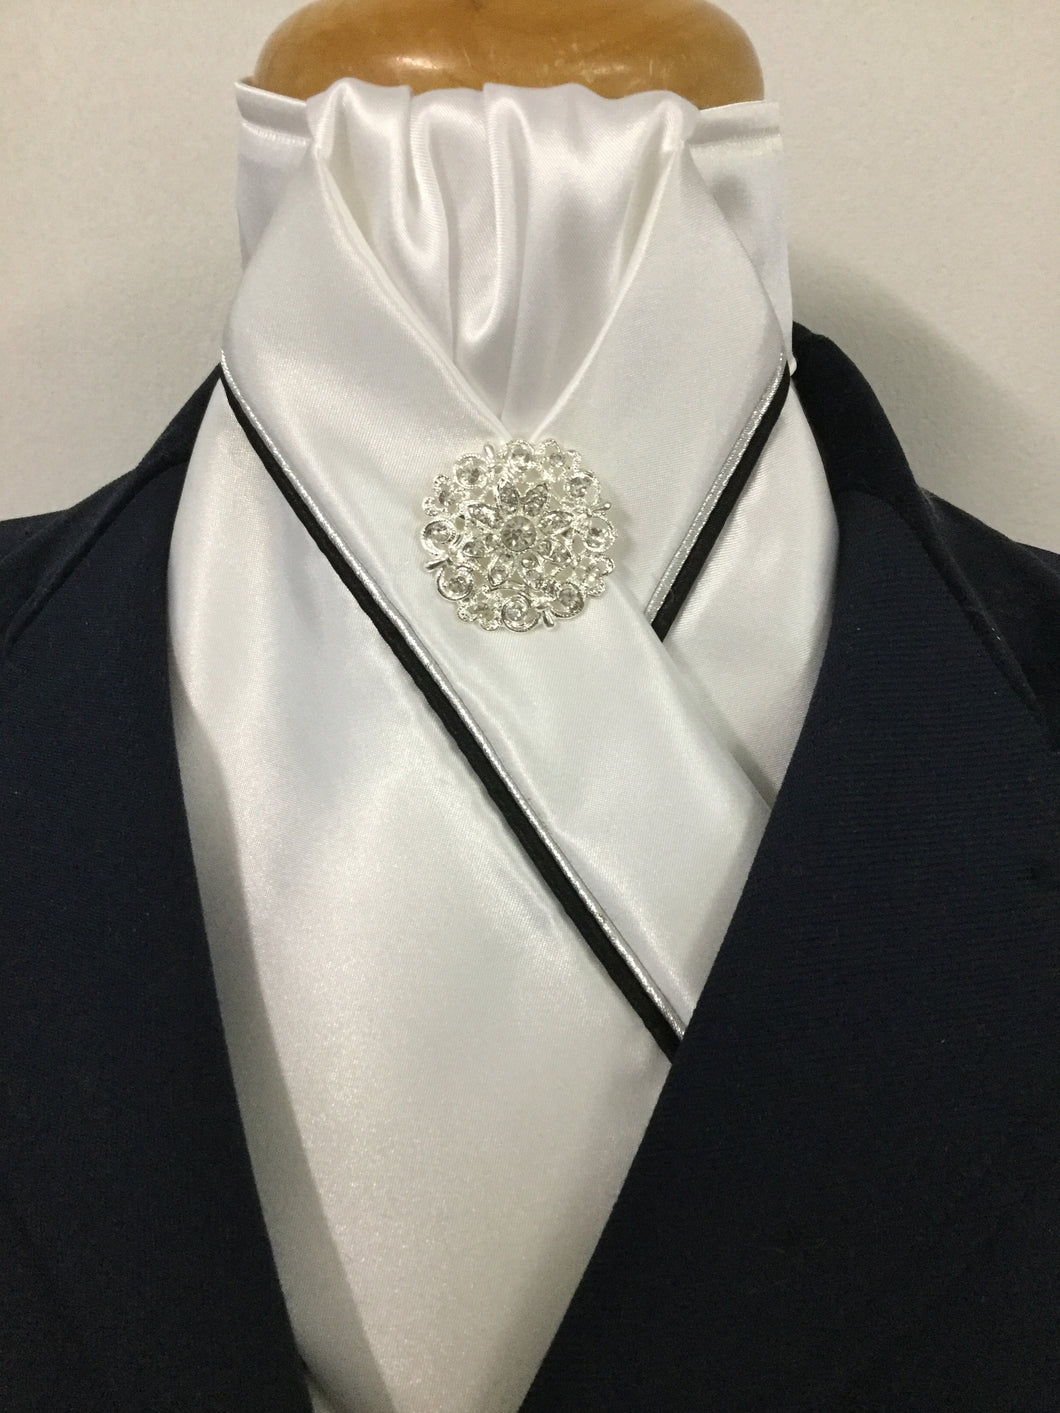 HHD White Satin Pretied Stock Tie with Silver & Black Piping